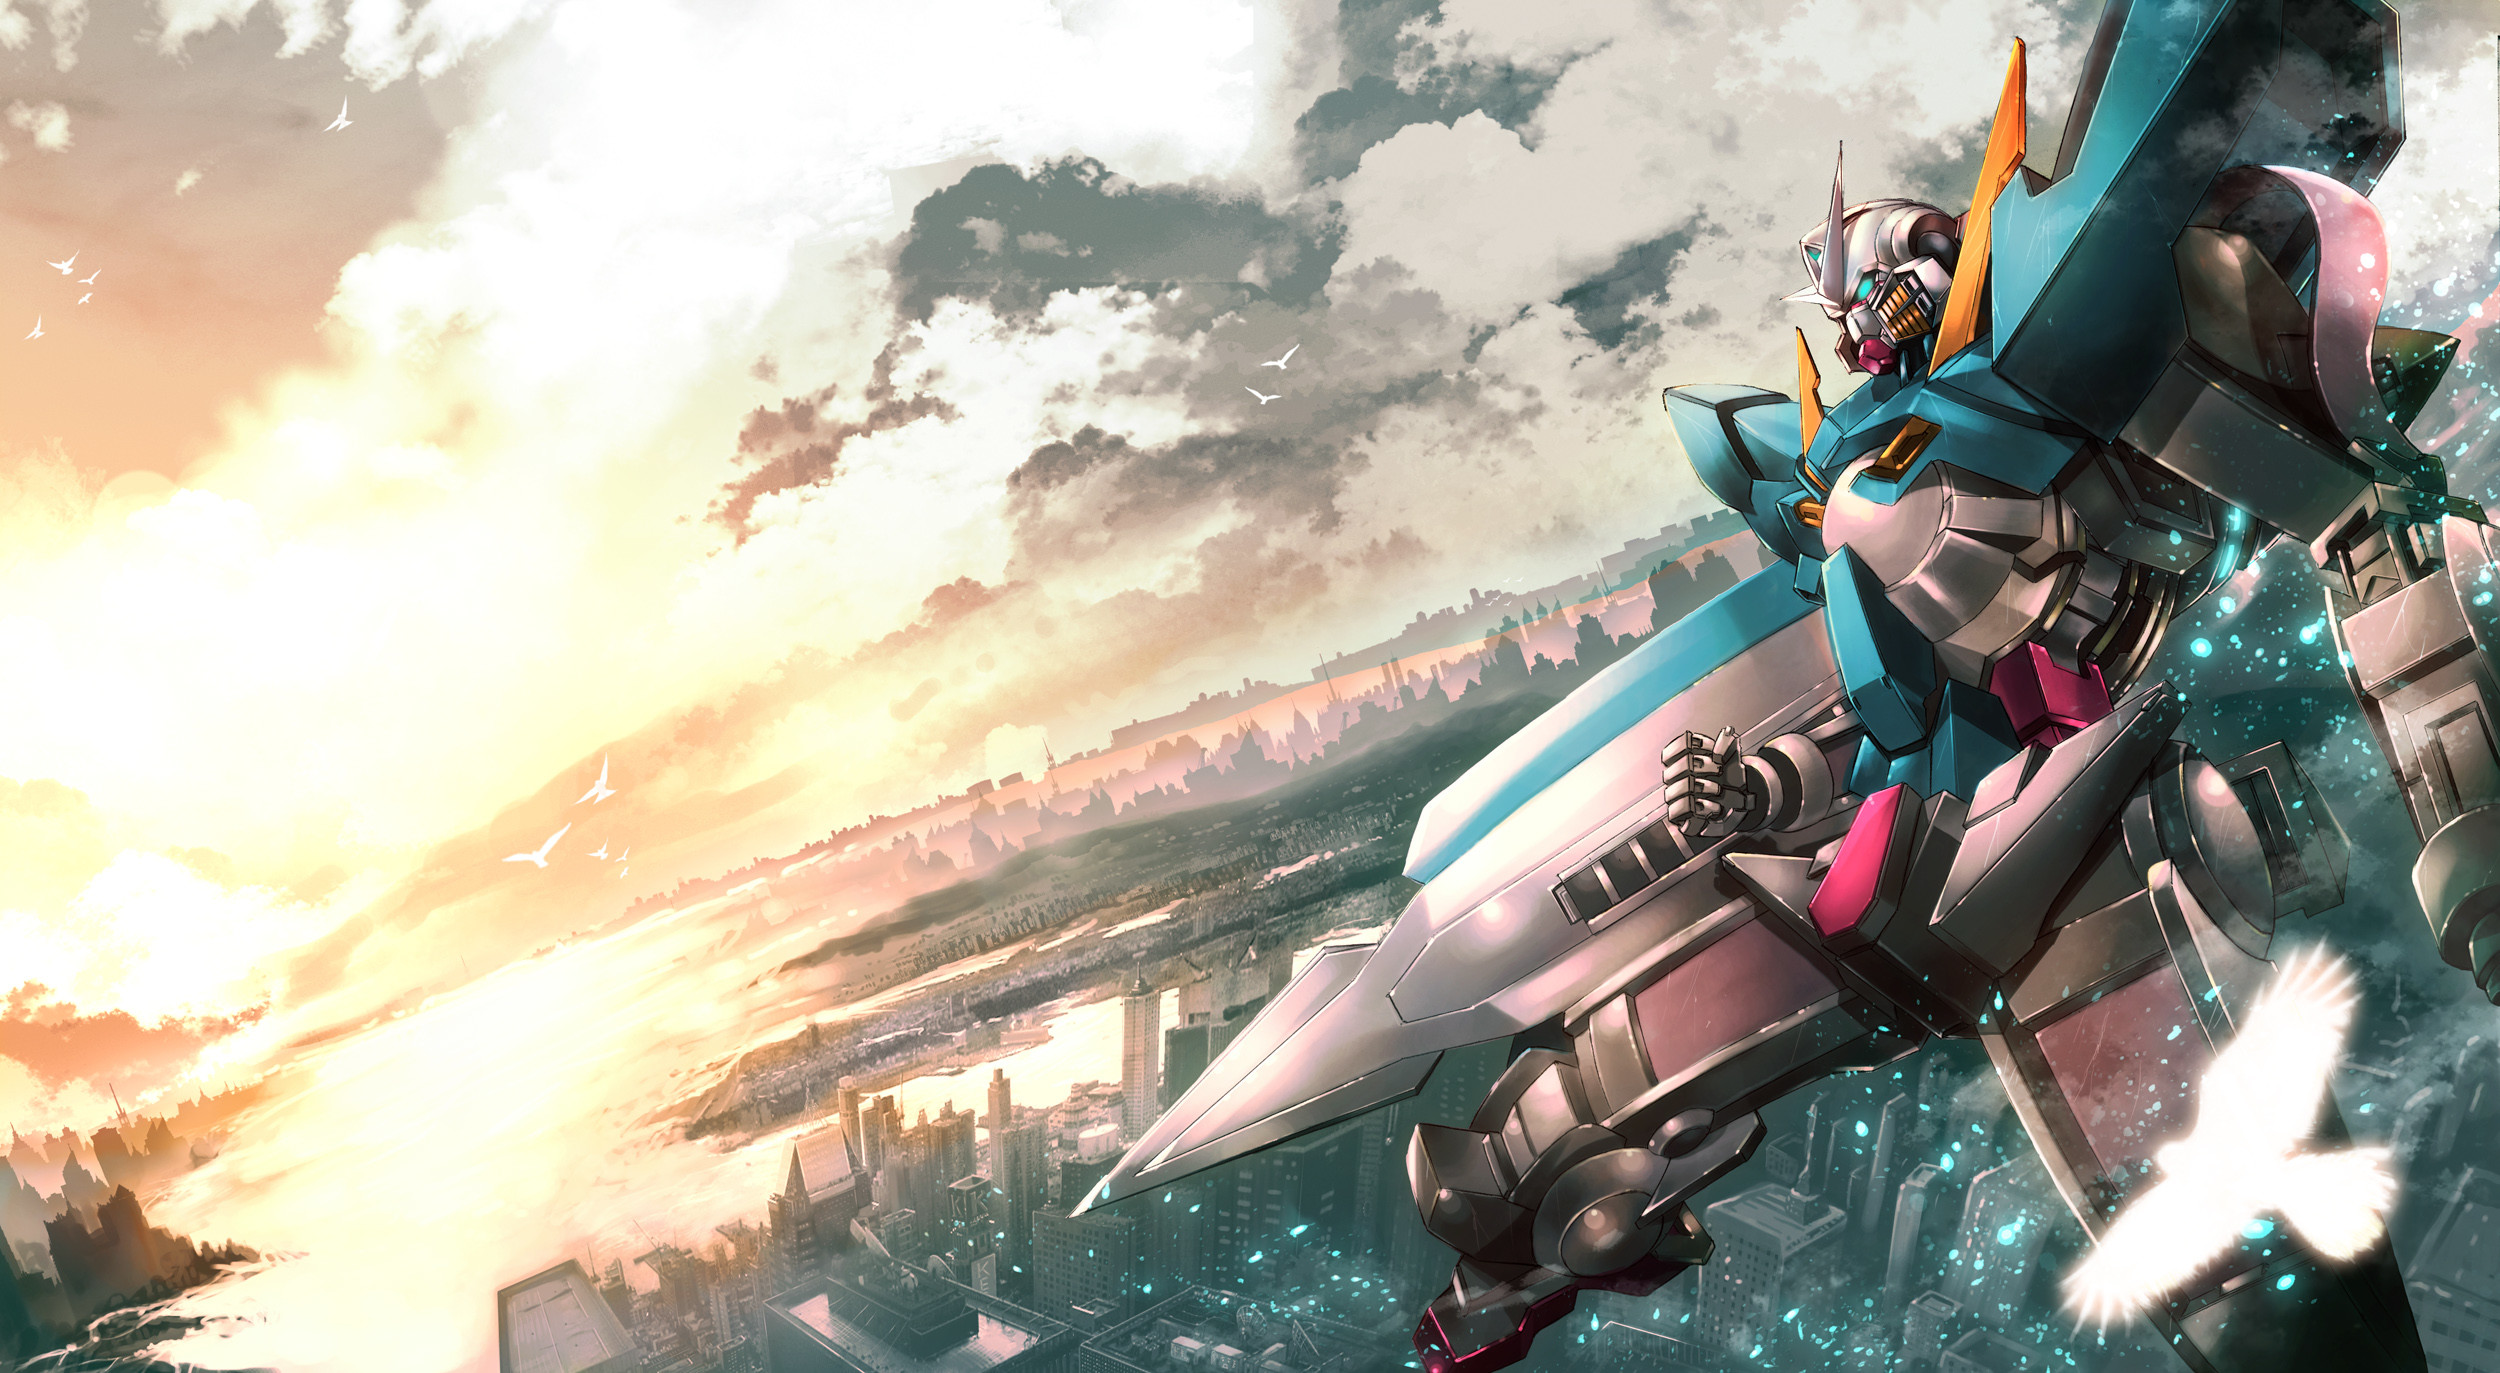 Iron Blooded Orphans Wallpaper Posted By John Peltier